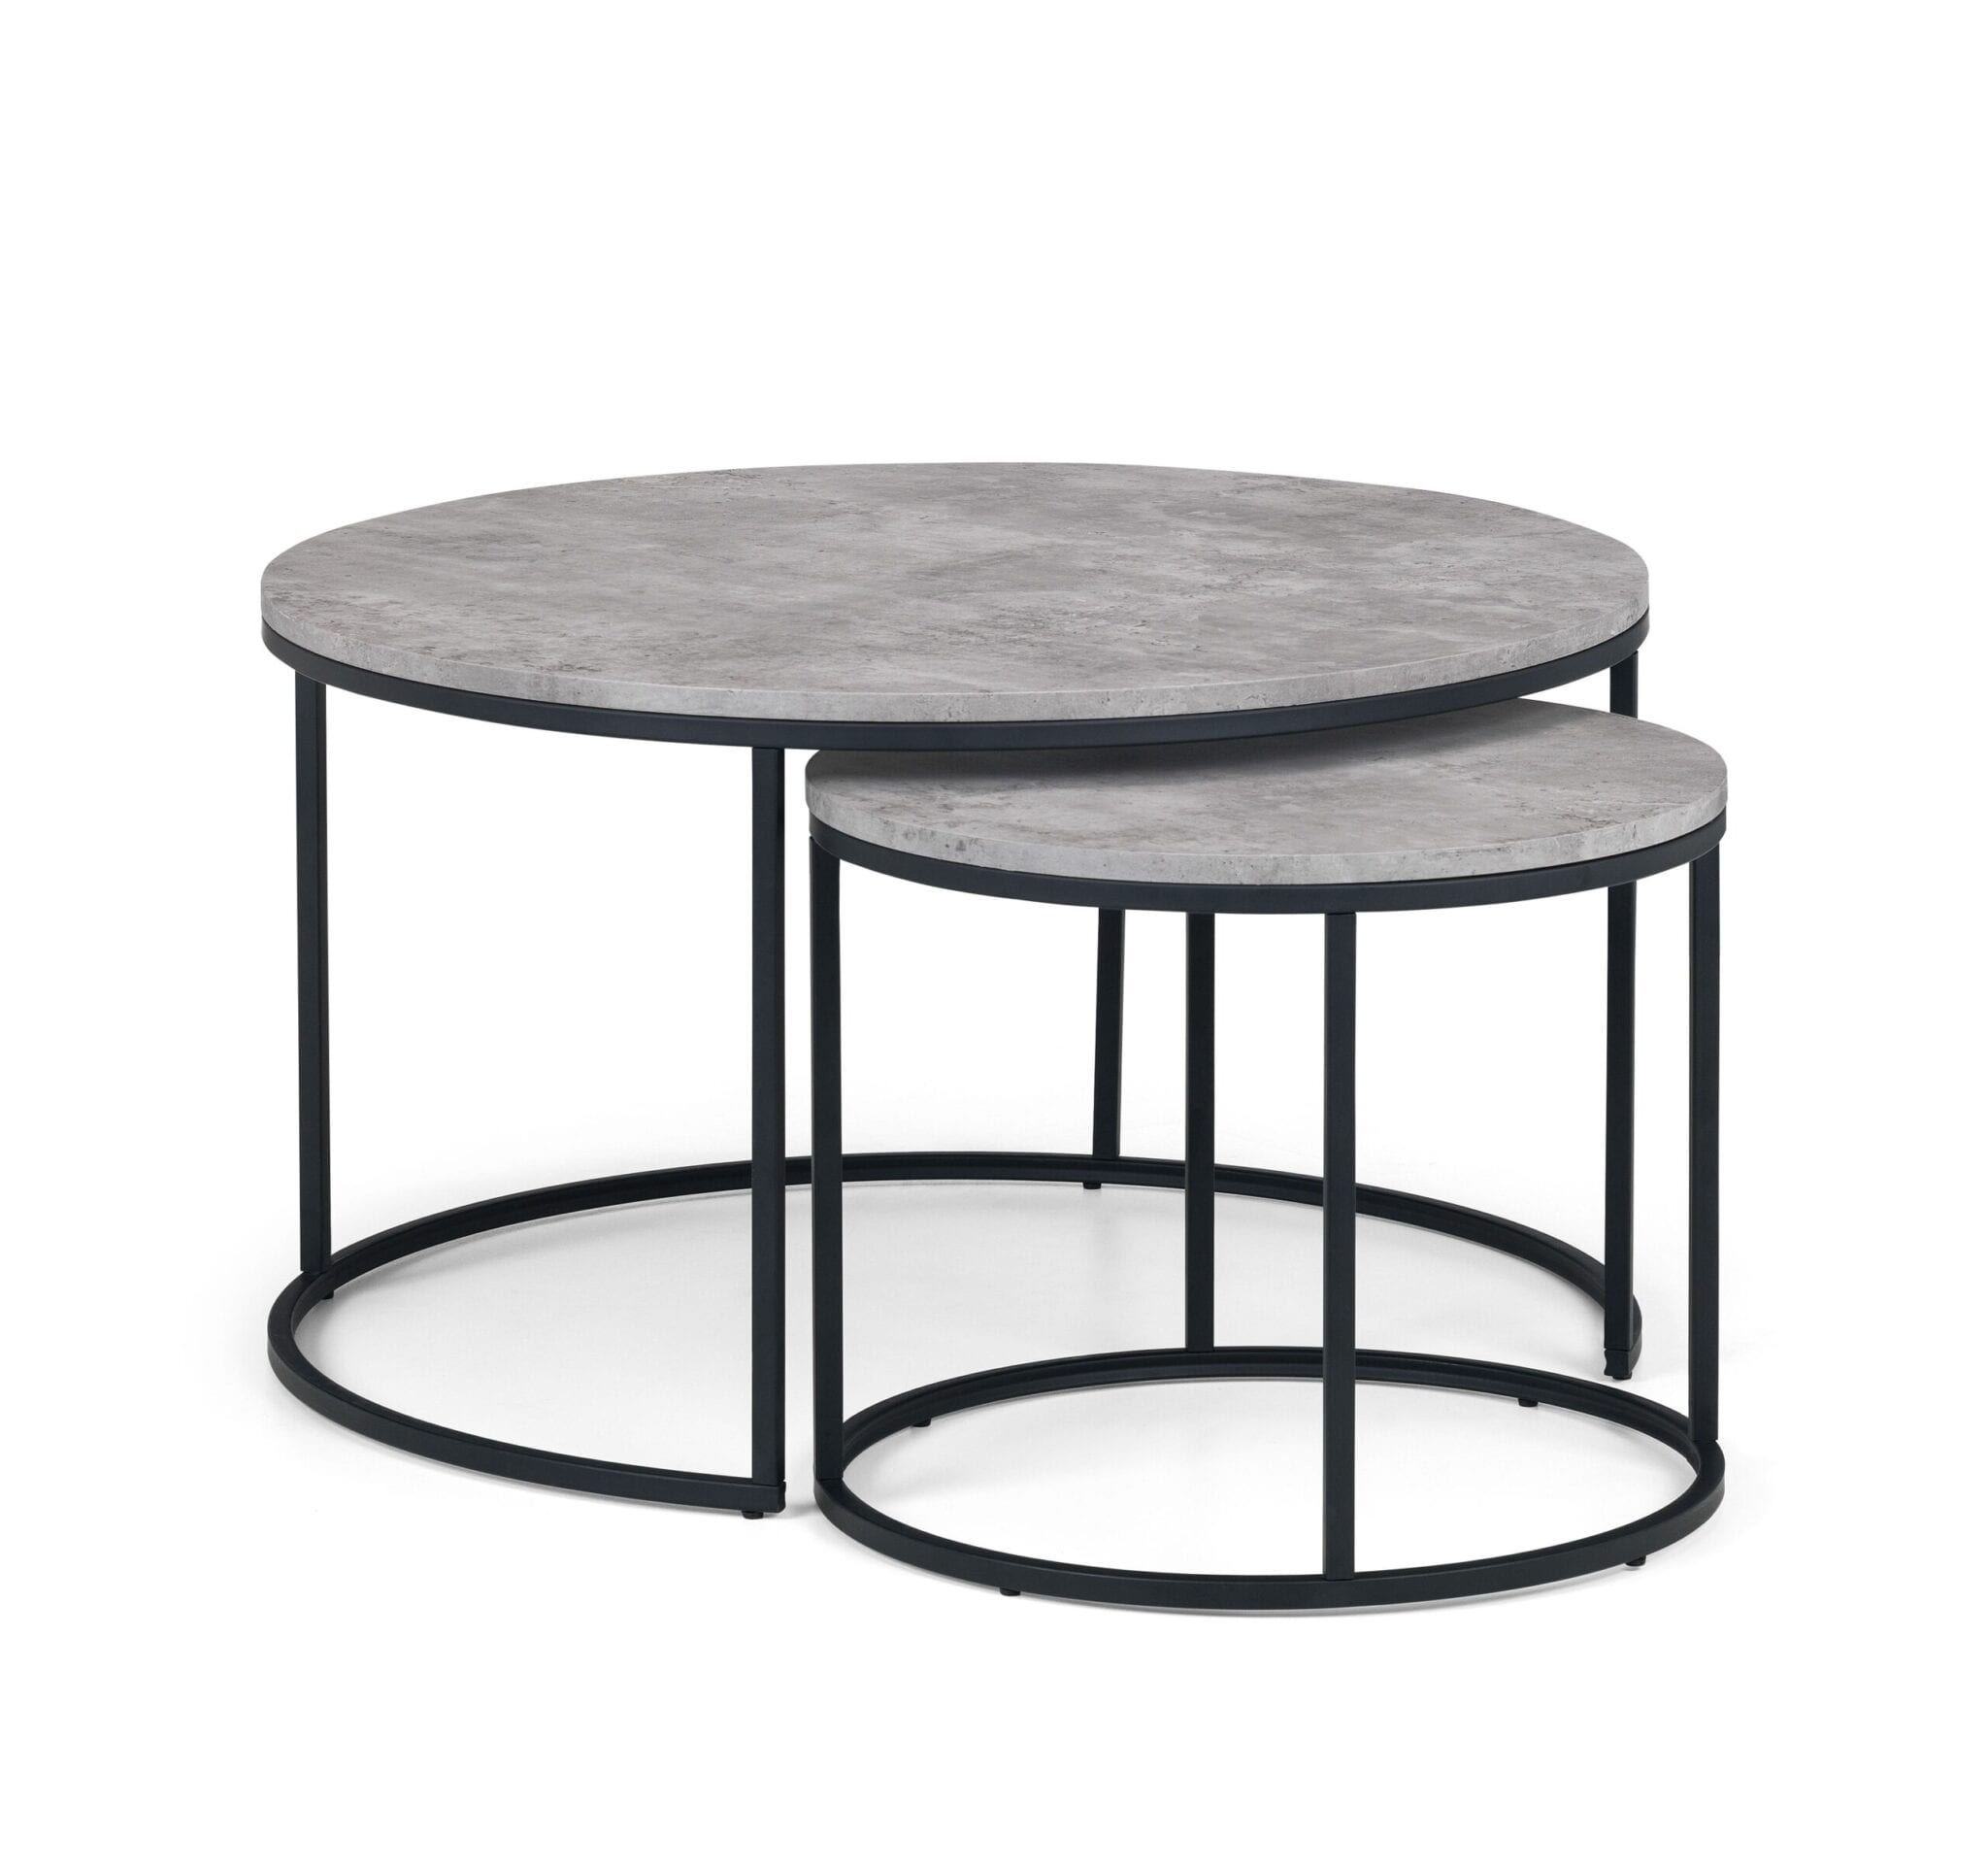 Oyster Concrete Round Nesting Coffee Table